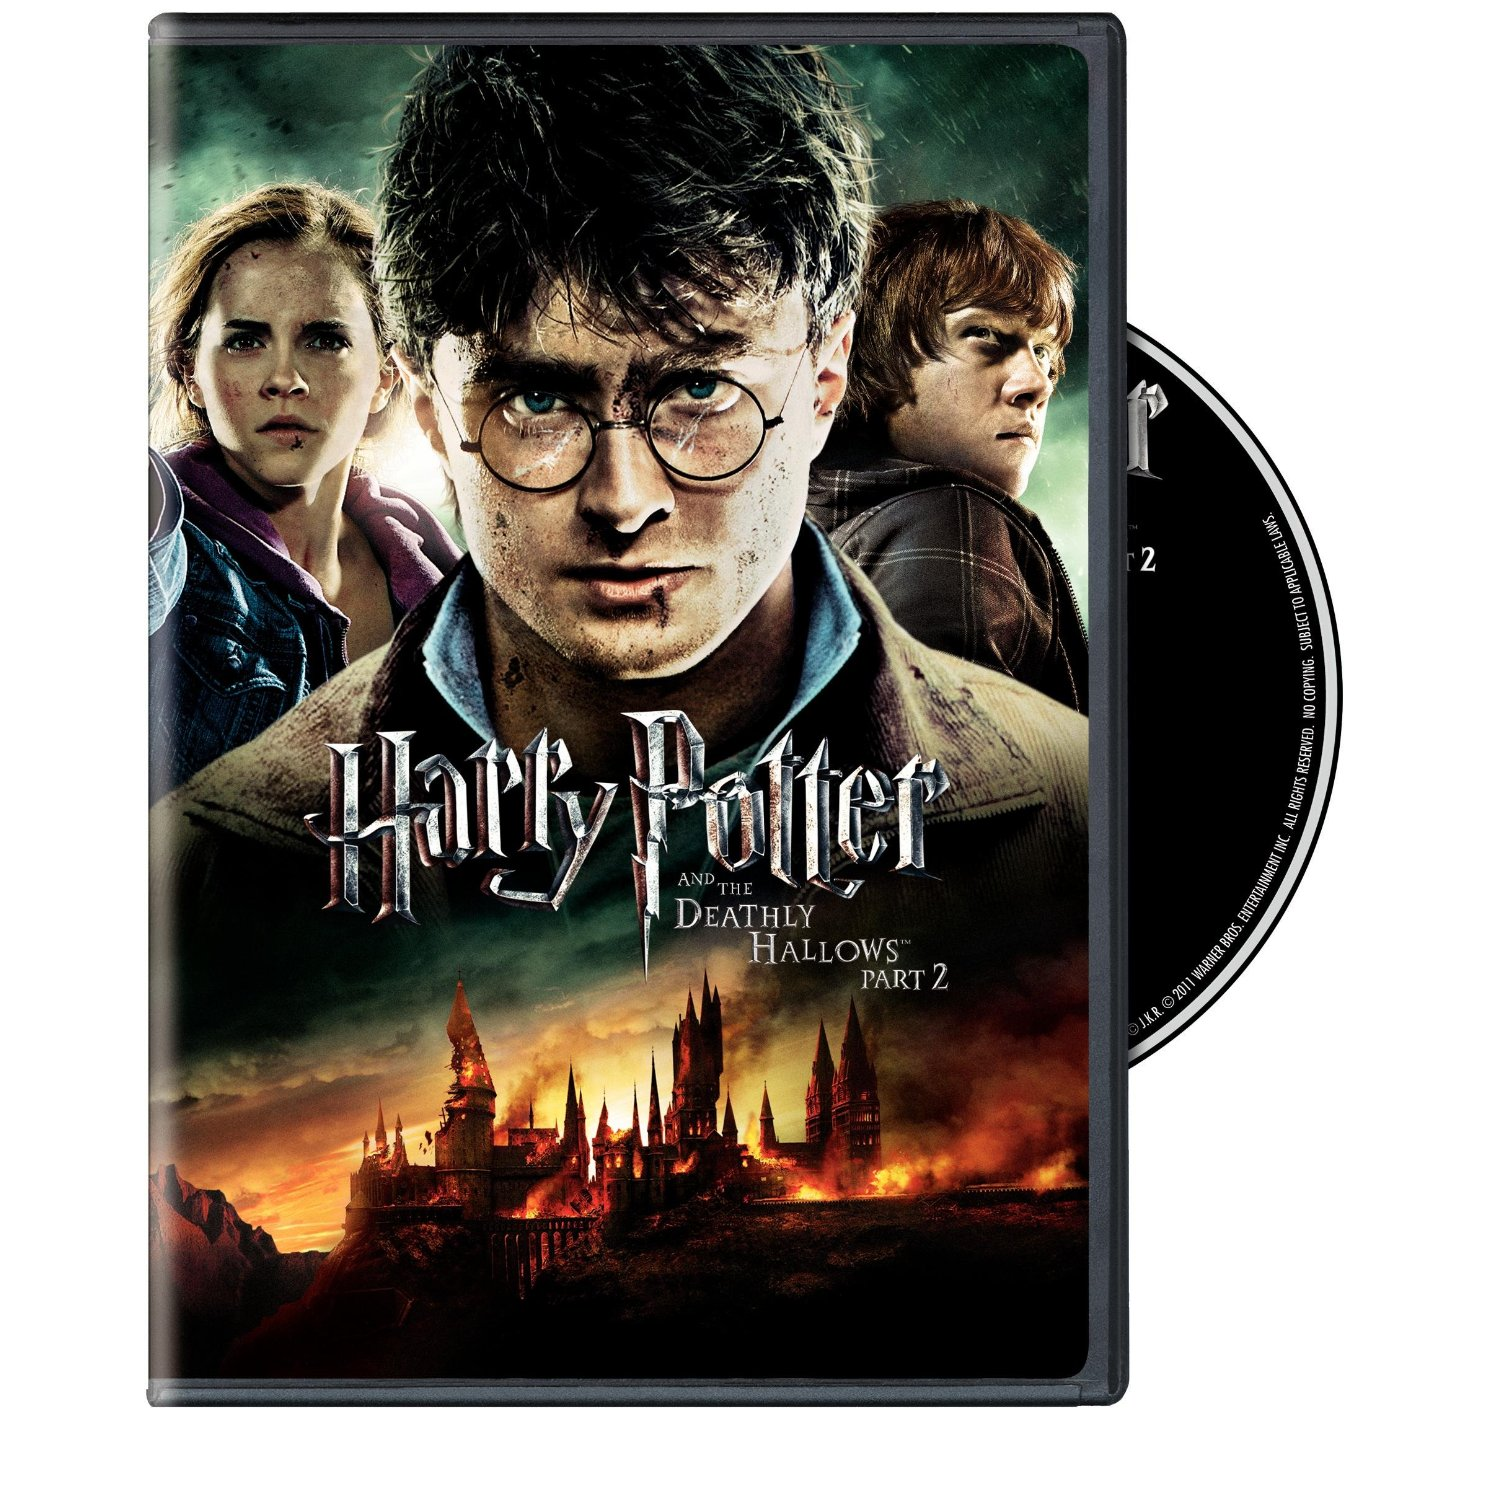 Harry Potter and the Deathly Hallows: Part 2 Blu-ray/DVD ...